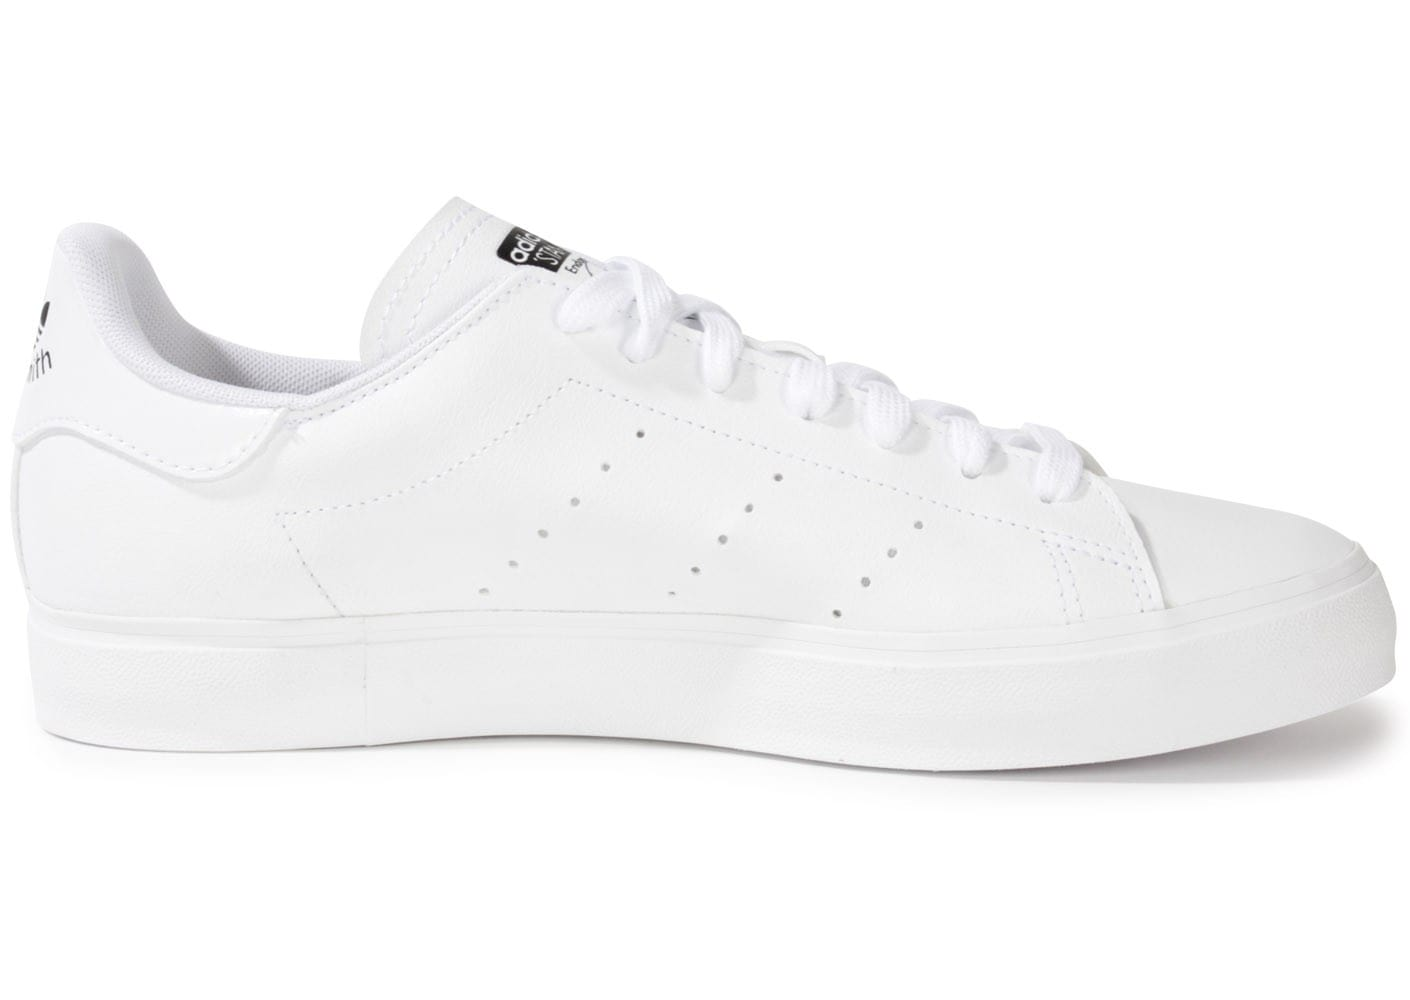 adidas stan smith blanche chaussures homme chausport. Black Bedroom Furniture Sets. Home Design Ideas